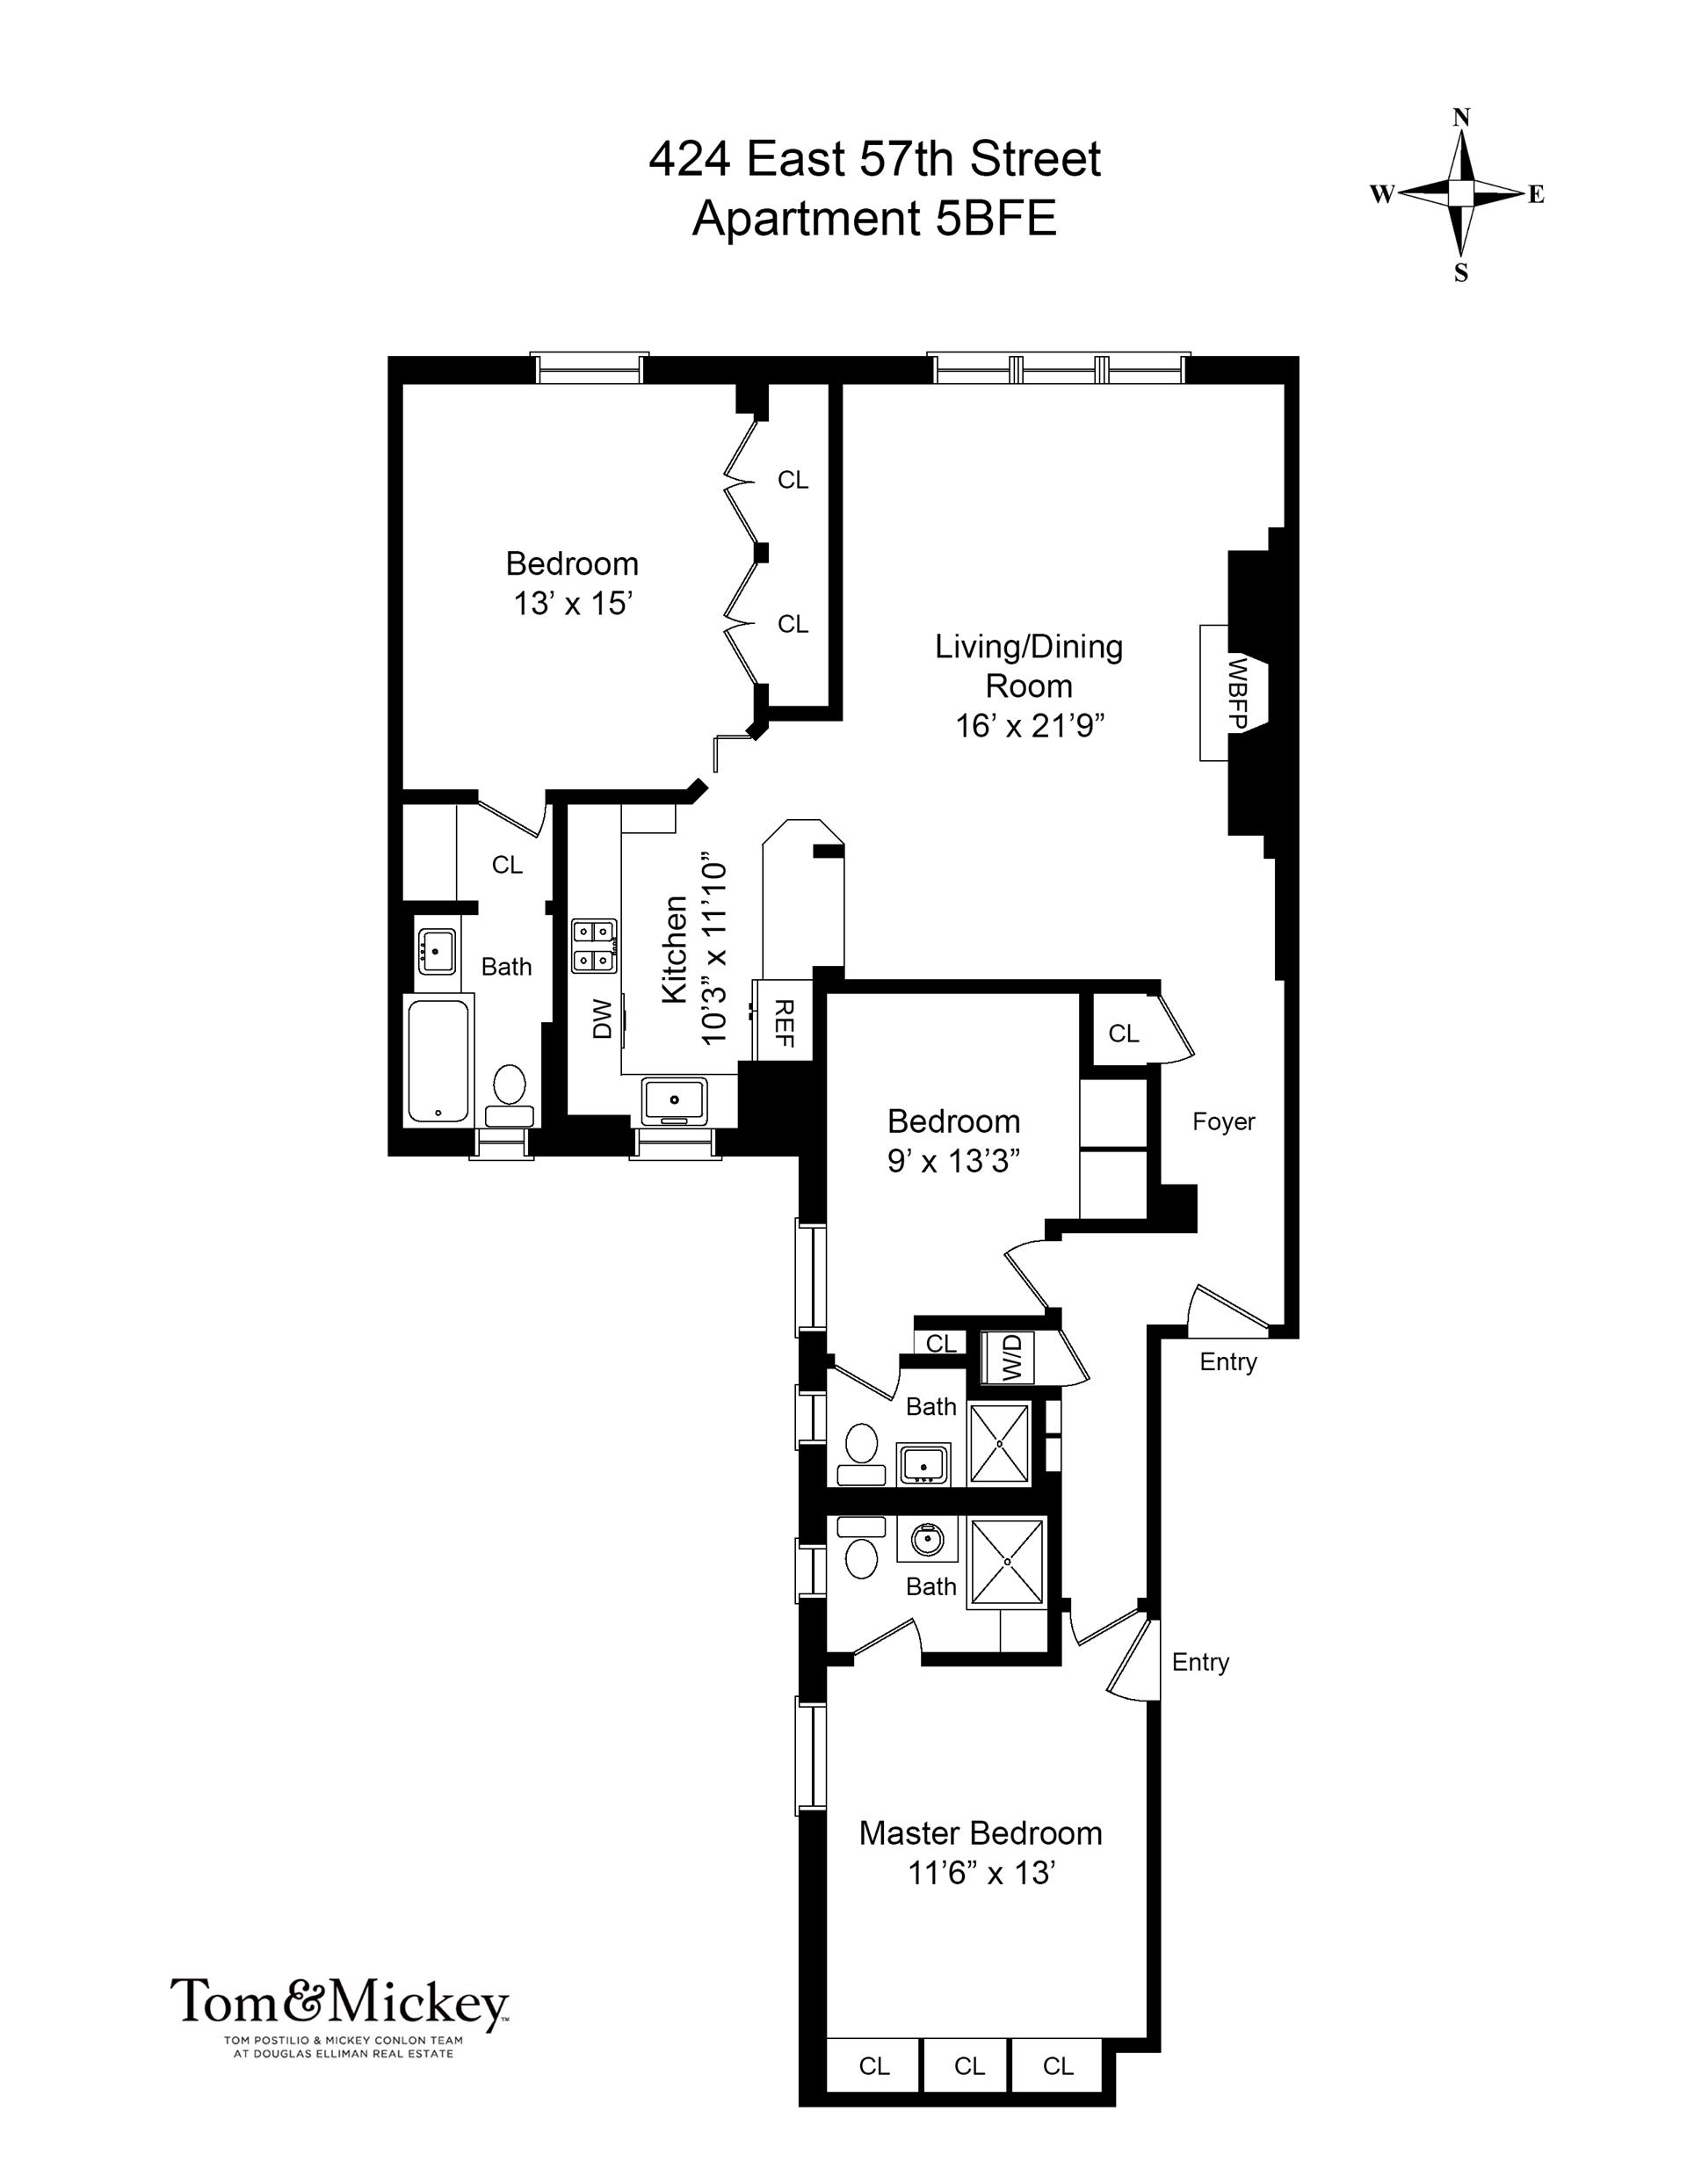 Floor plan of SUTTON ASSOC., 424 East 57th St, 5BFE - Sutton Area, New York